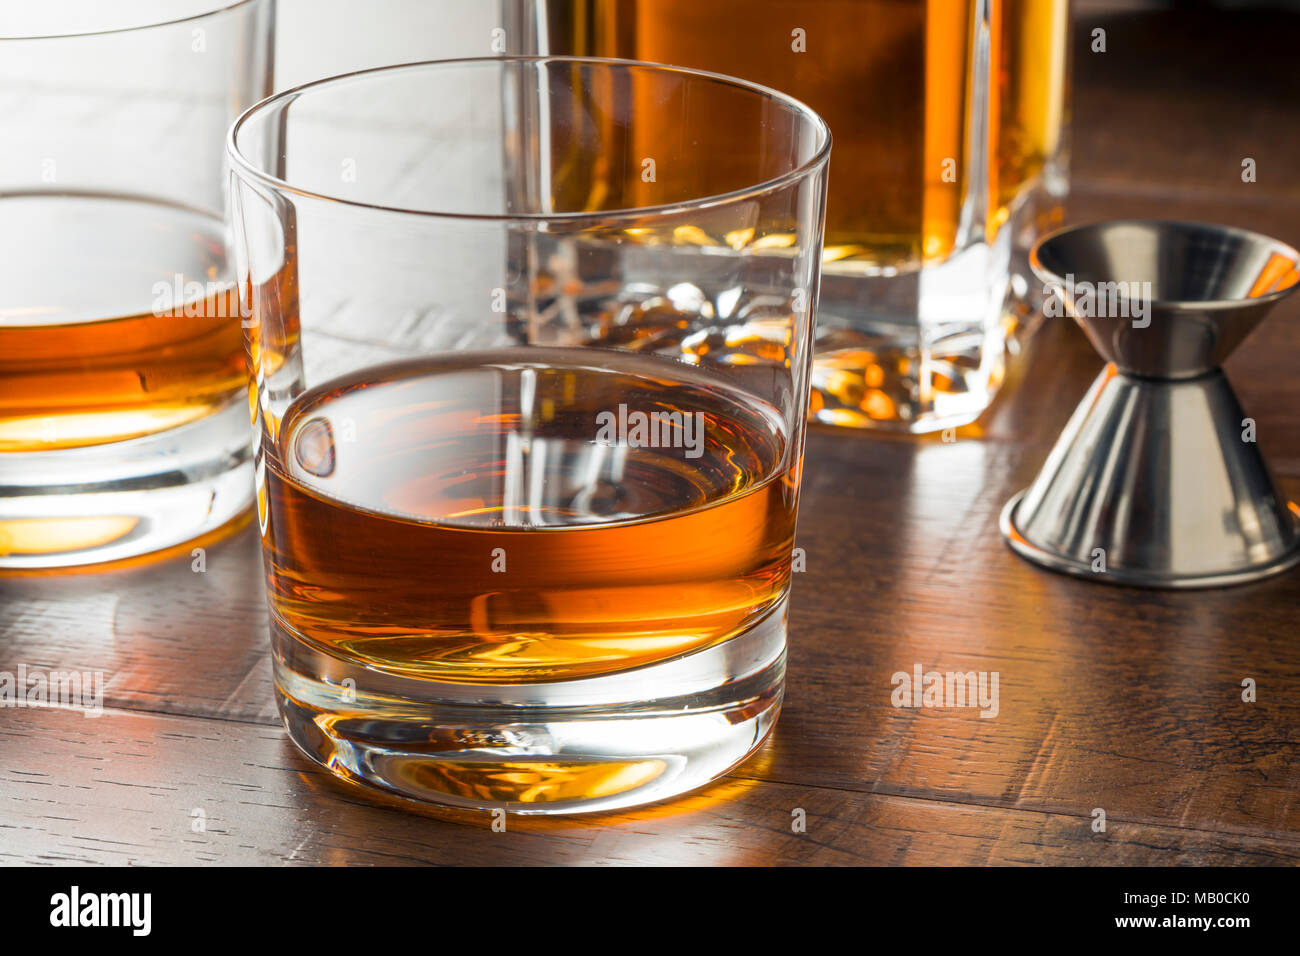 Delicious Bourbon Whiskey Neat in a Glass - Stock Image